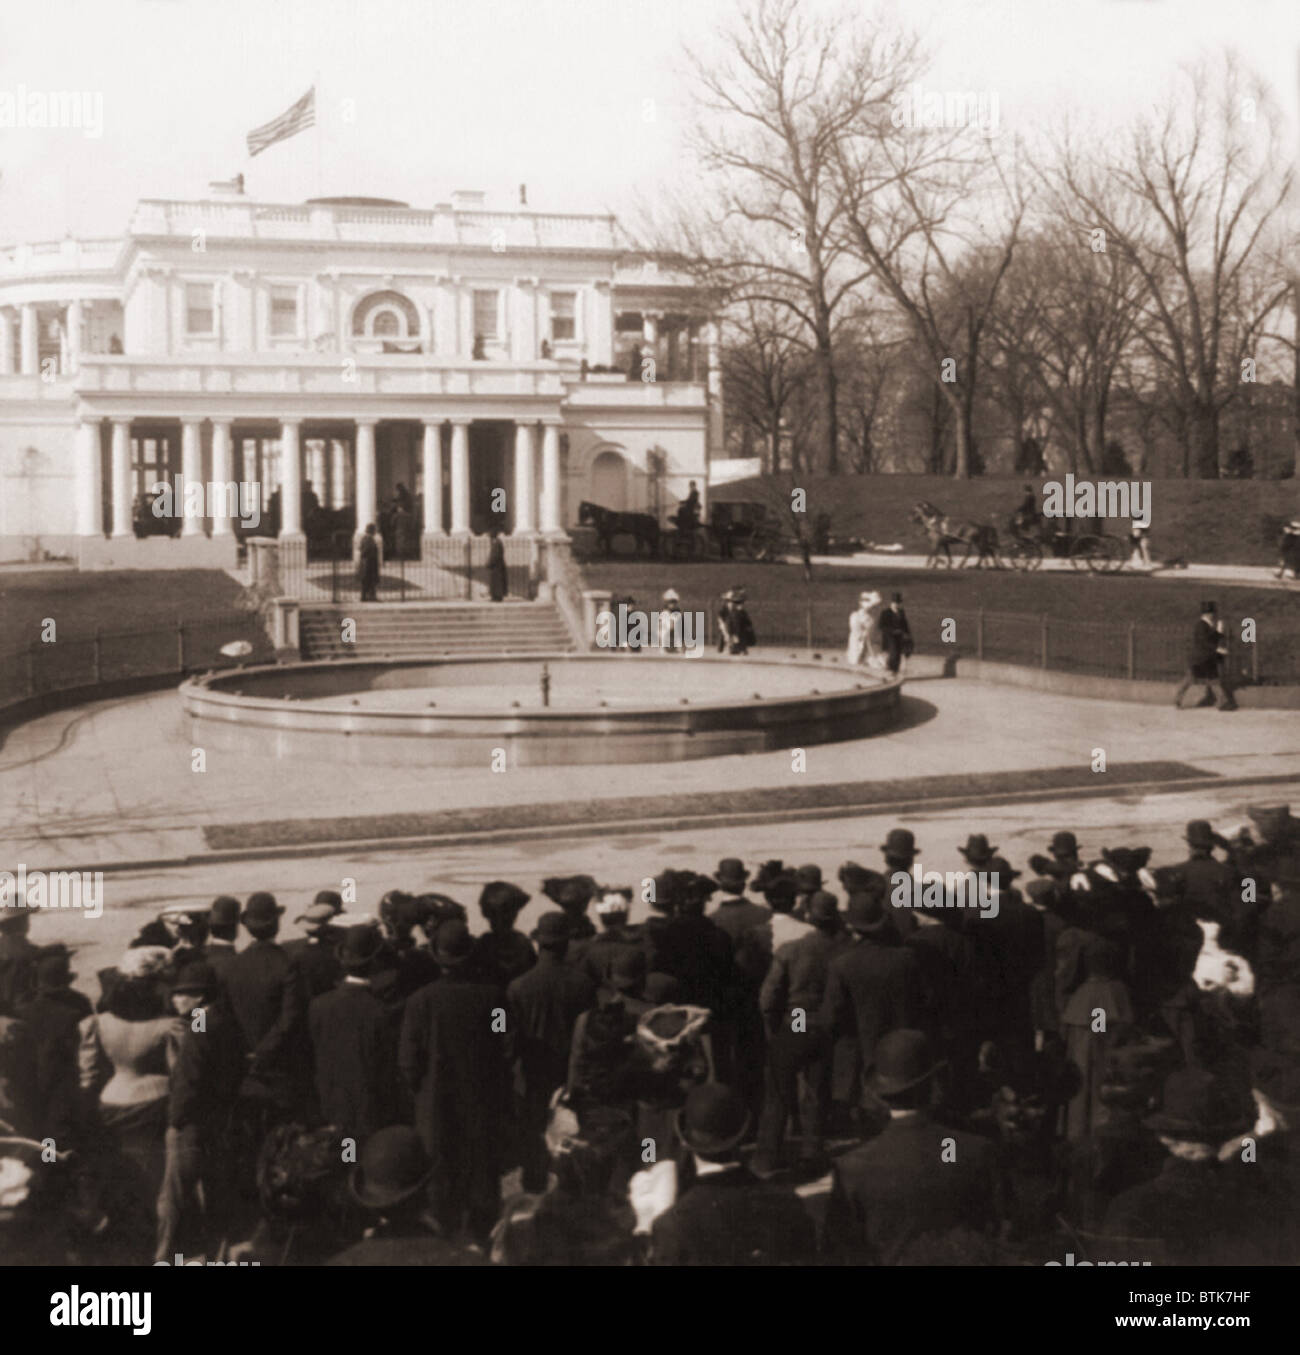 The White House In Washington Dc As Horse Drawn Carriages Arrive